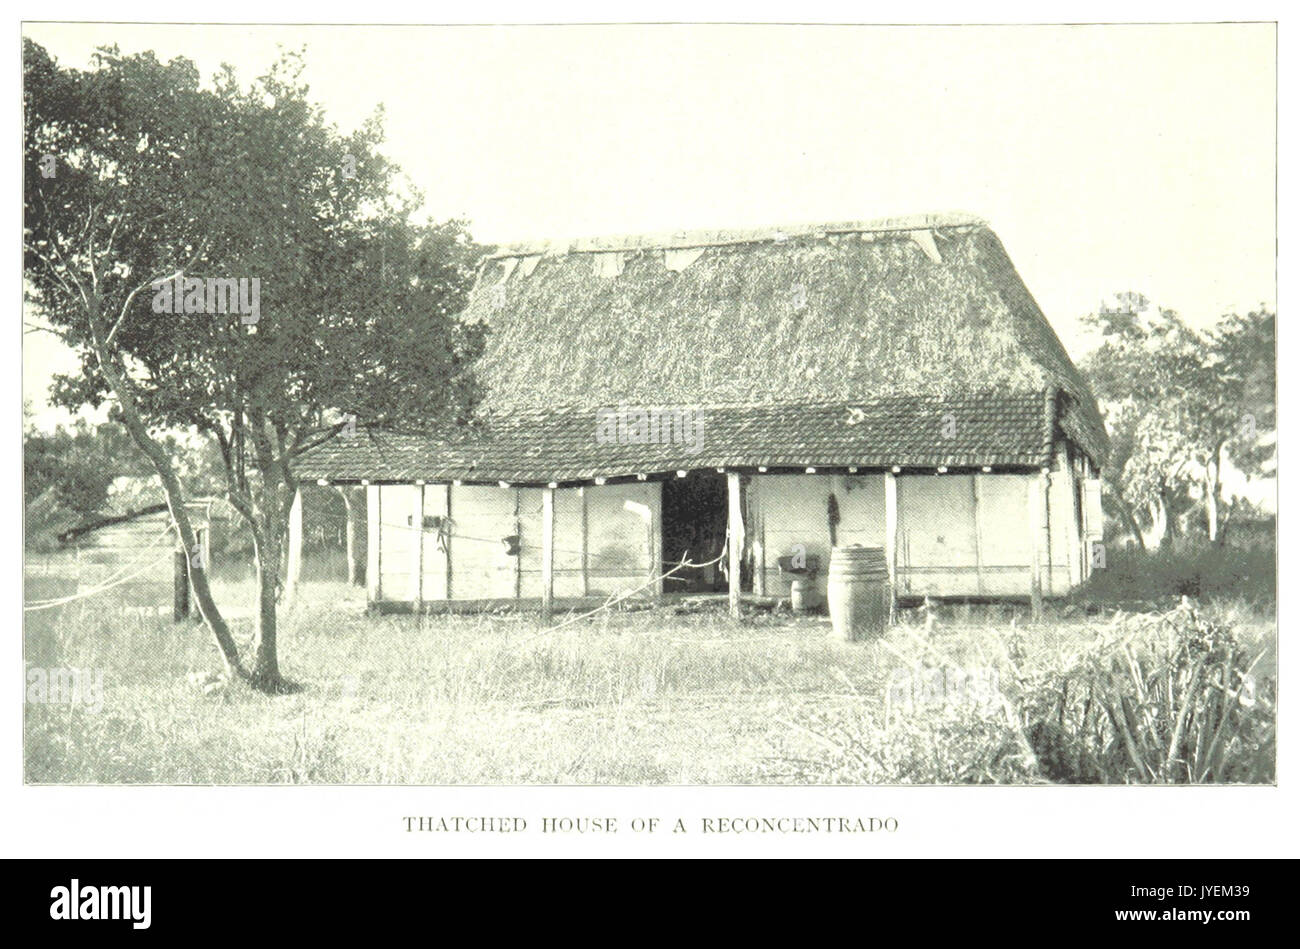 CLARK(1899) Cuba p309   THATCHED HOUSE OF A RECONCENTRADO - Stock Image